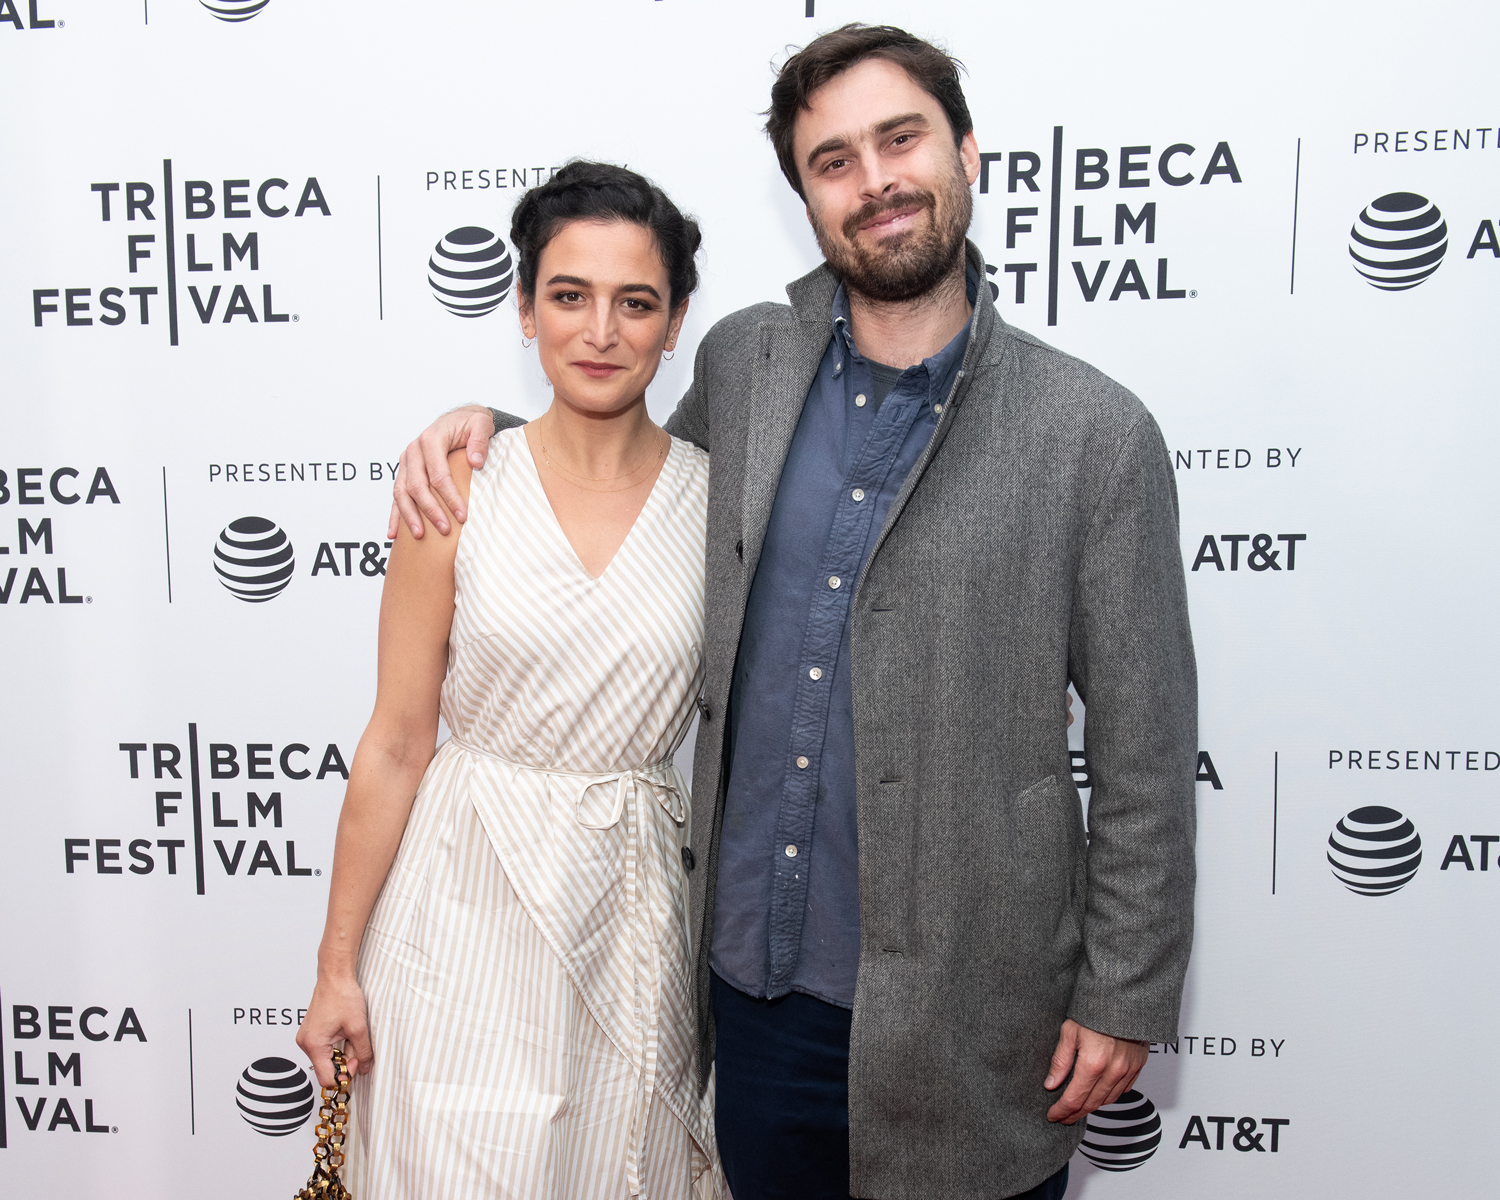 Jenny Slate's Engagement Story to Ben Shattuck Is Hilariously Cute (Of Course)